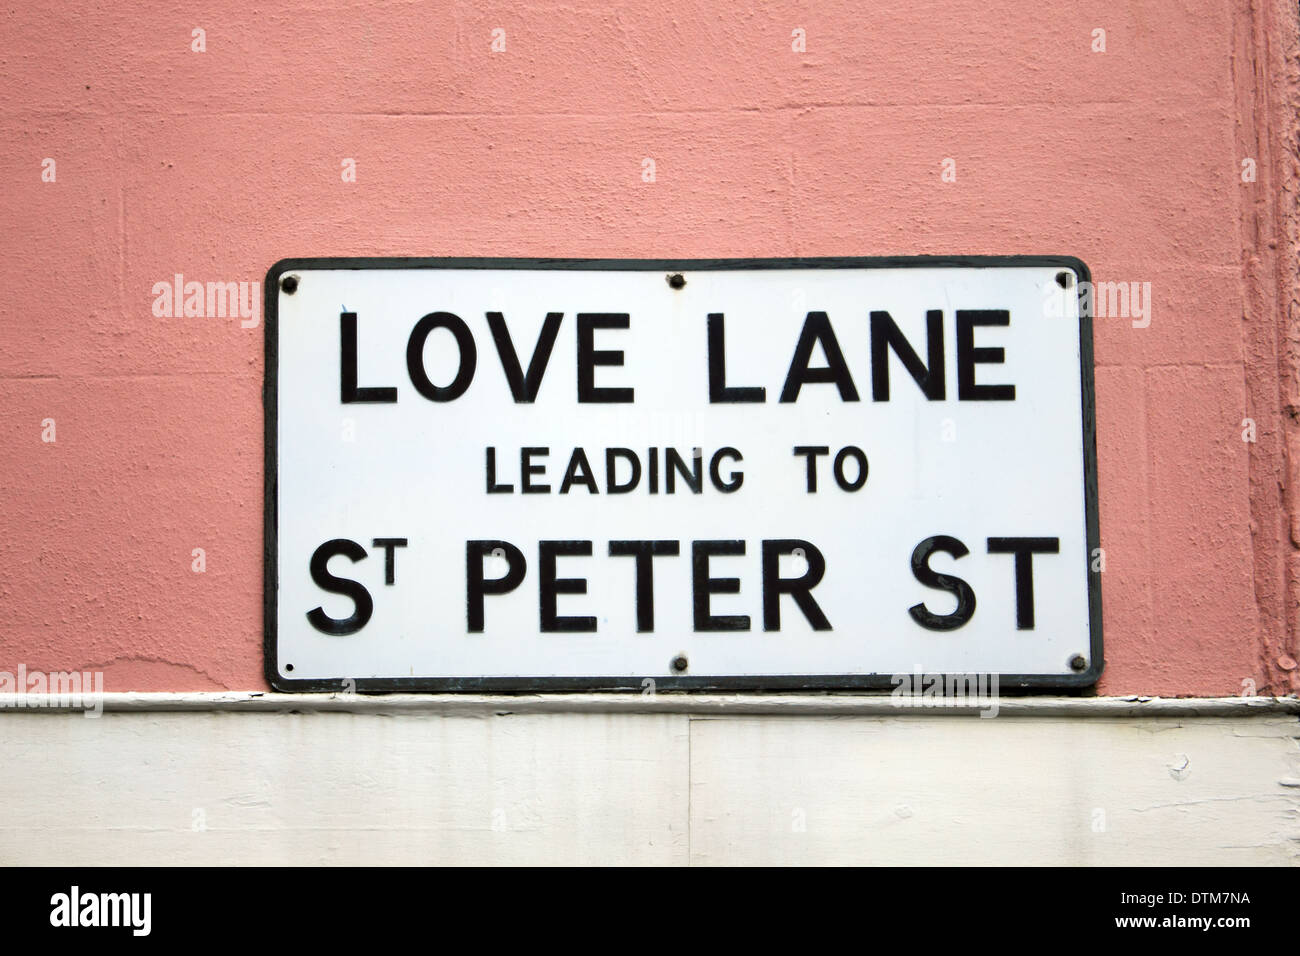 Love Lane in the historic town of Sandwich, Kent, England, UK. - Stock Image